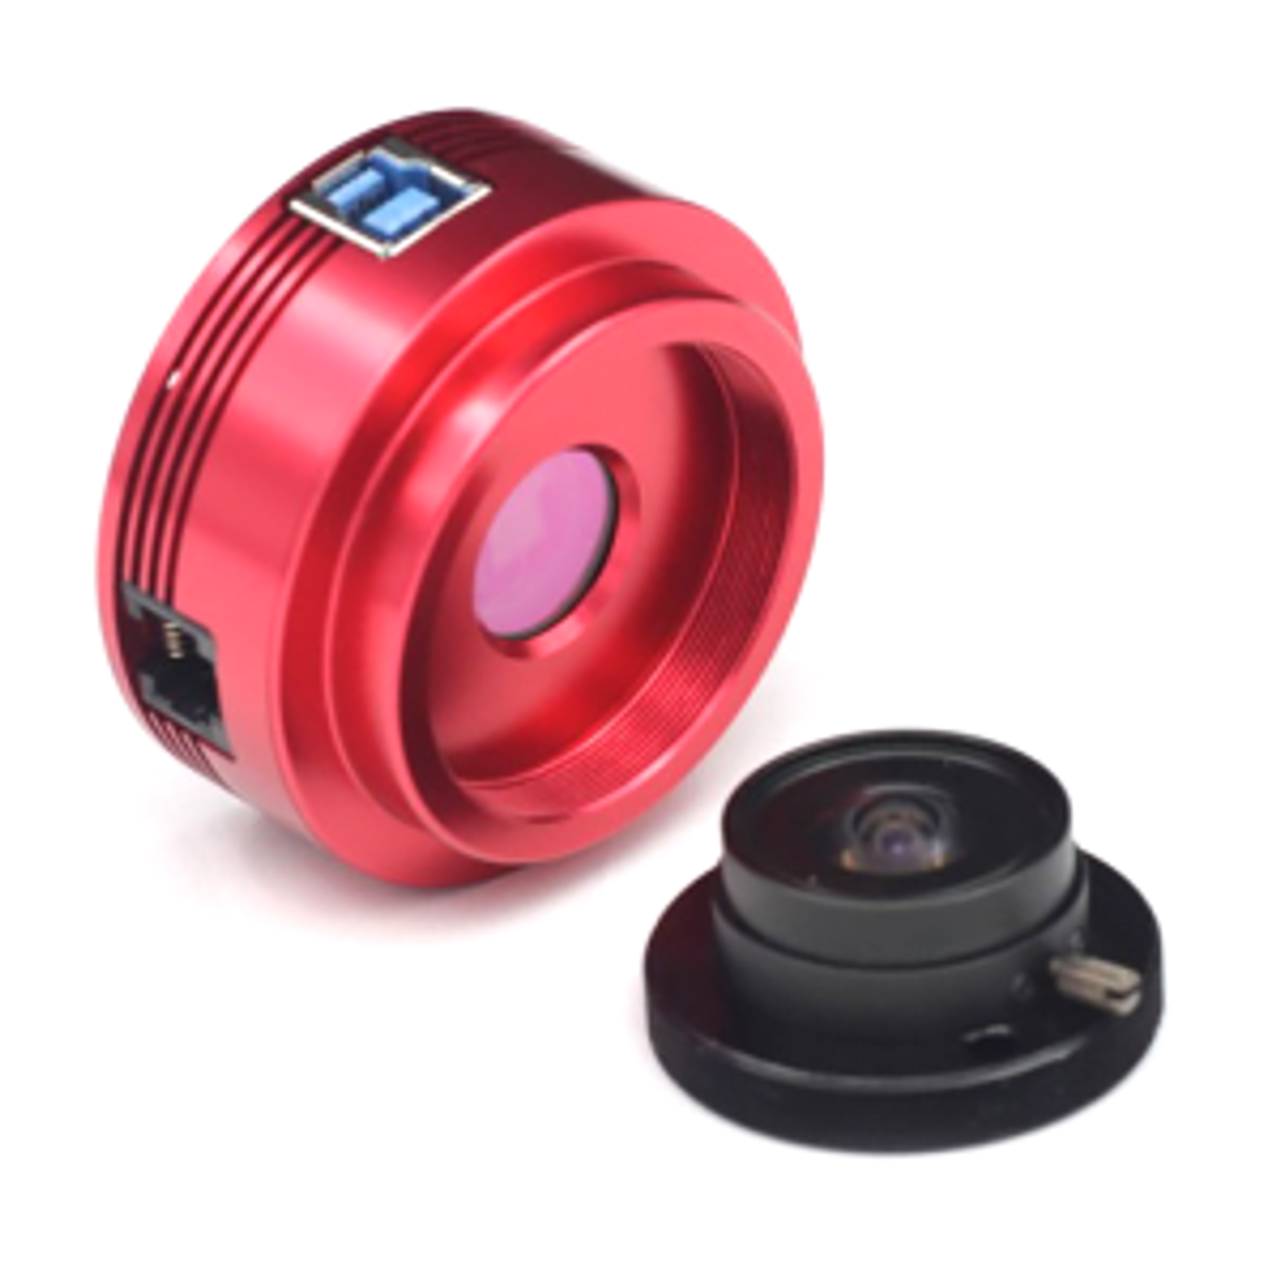 ZWO ASI120MC-S Super Speed Color CMOS Camera